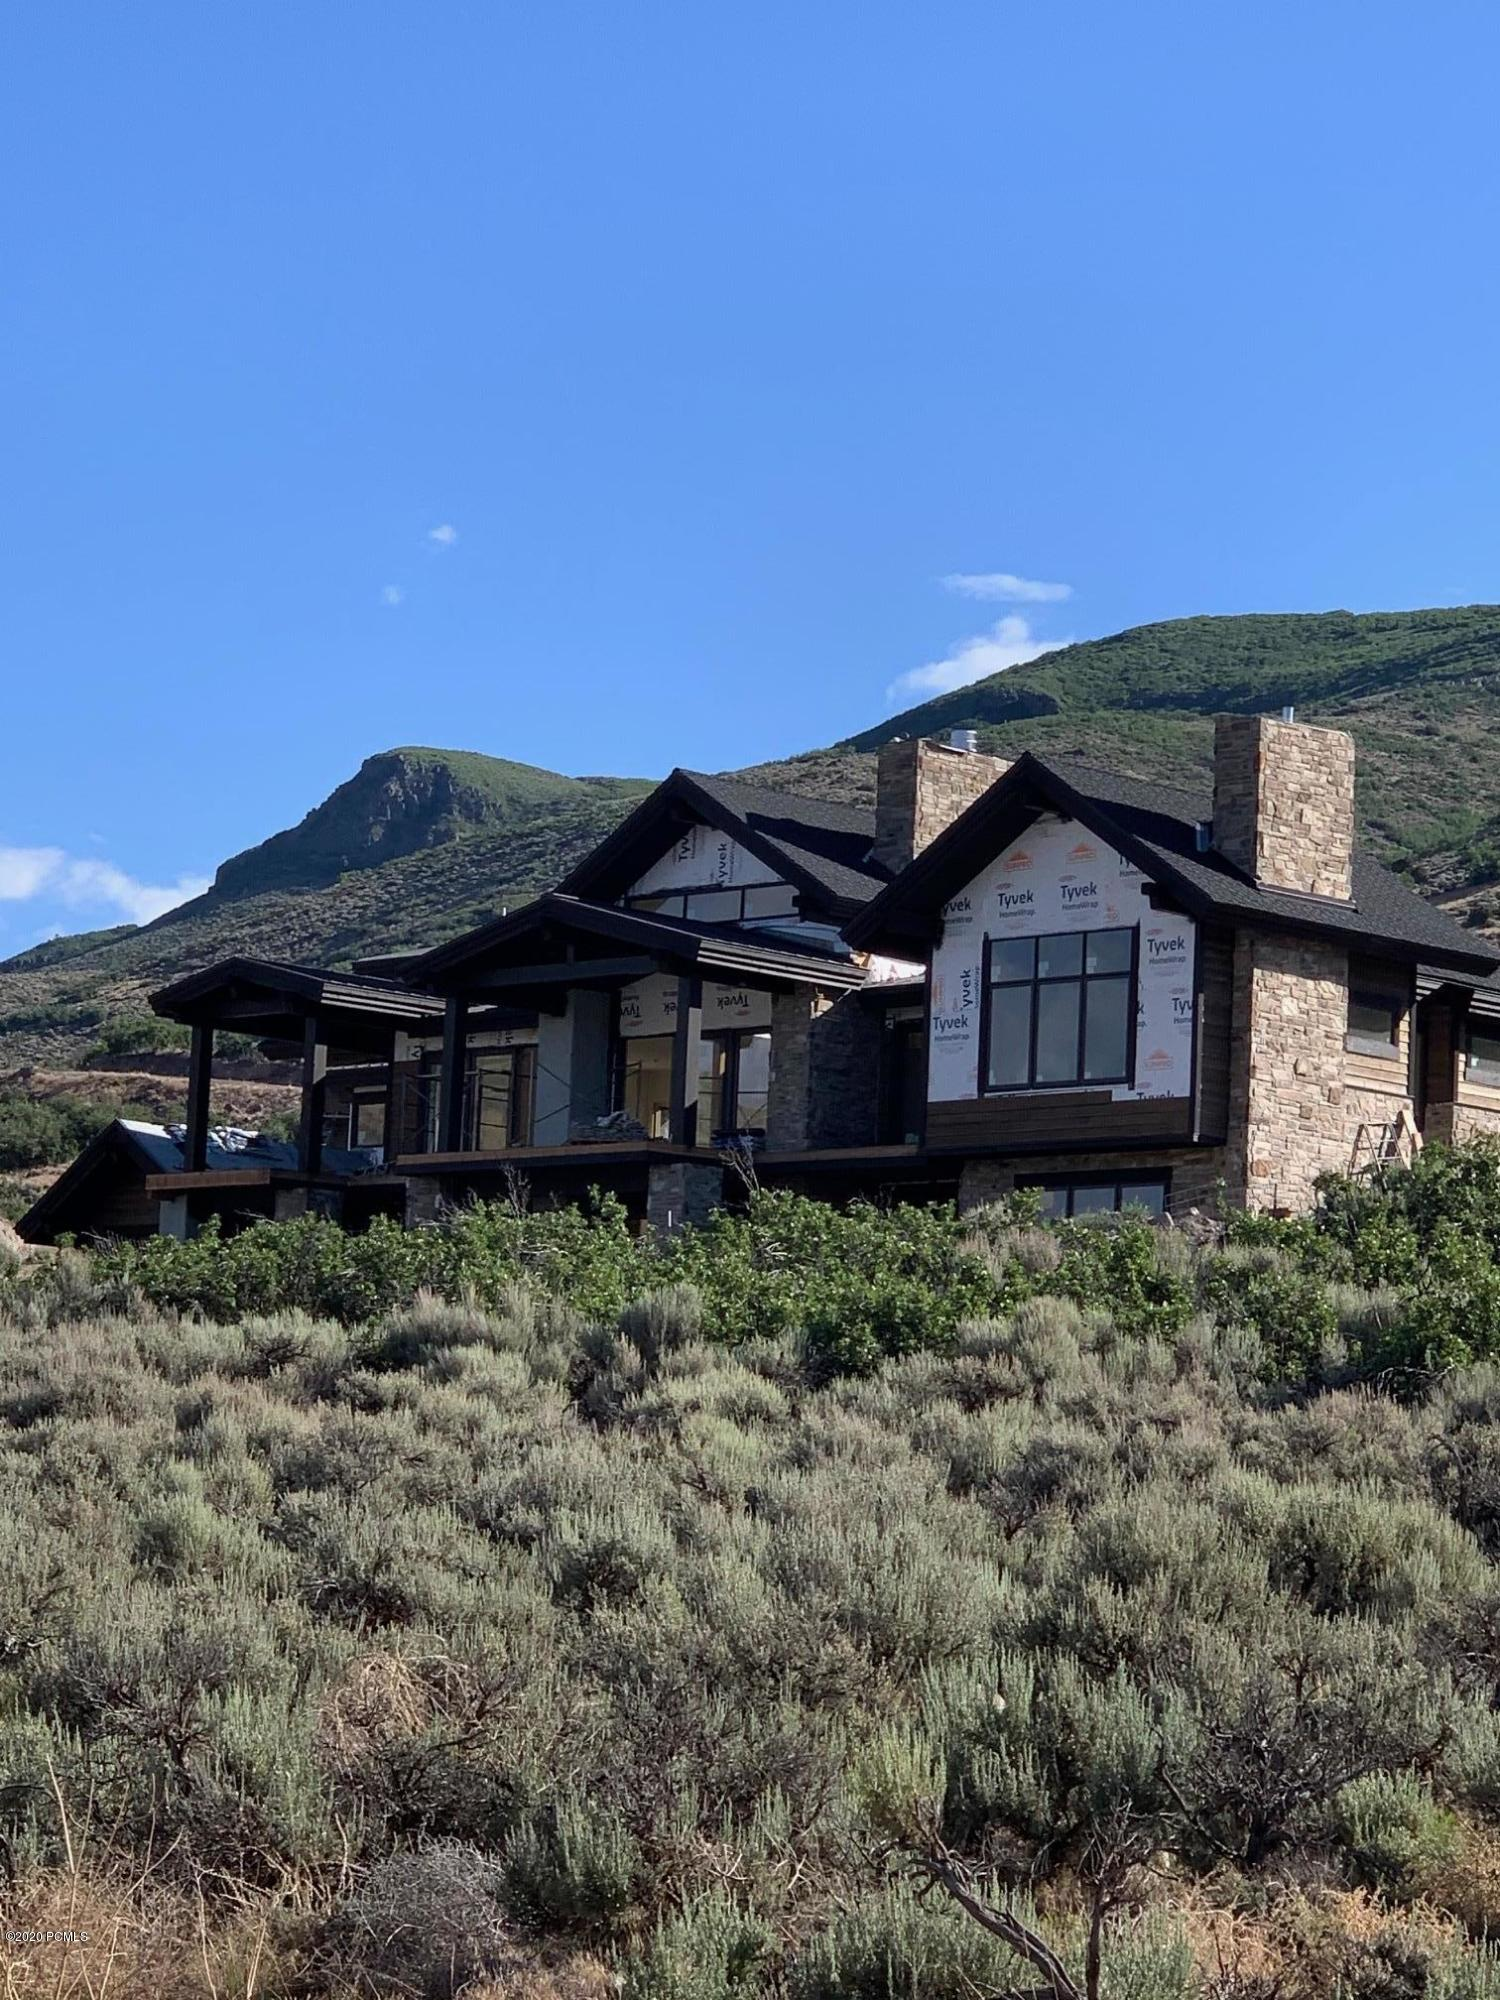 1689 Chimney Rock Rd (Lot 527), Heber City, Utah 84032, 5 Bedrooms Bedrooms, ,6 BathroomsBathrooms,Single Family,For Sale,Chimney Rock Rd (Lot 527),20190109112430415765000000